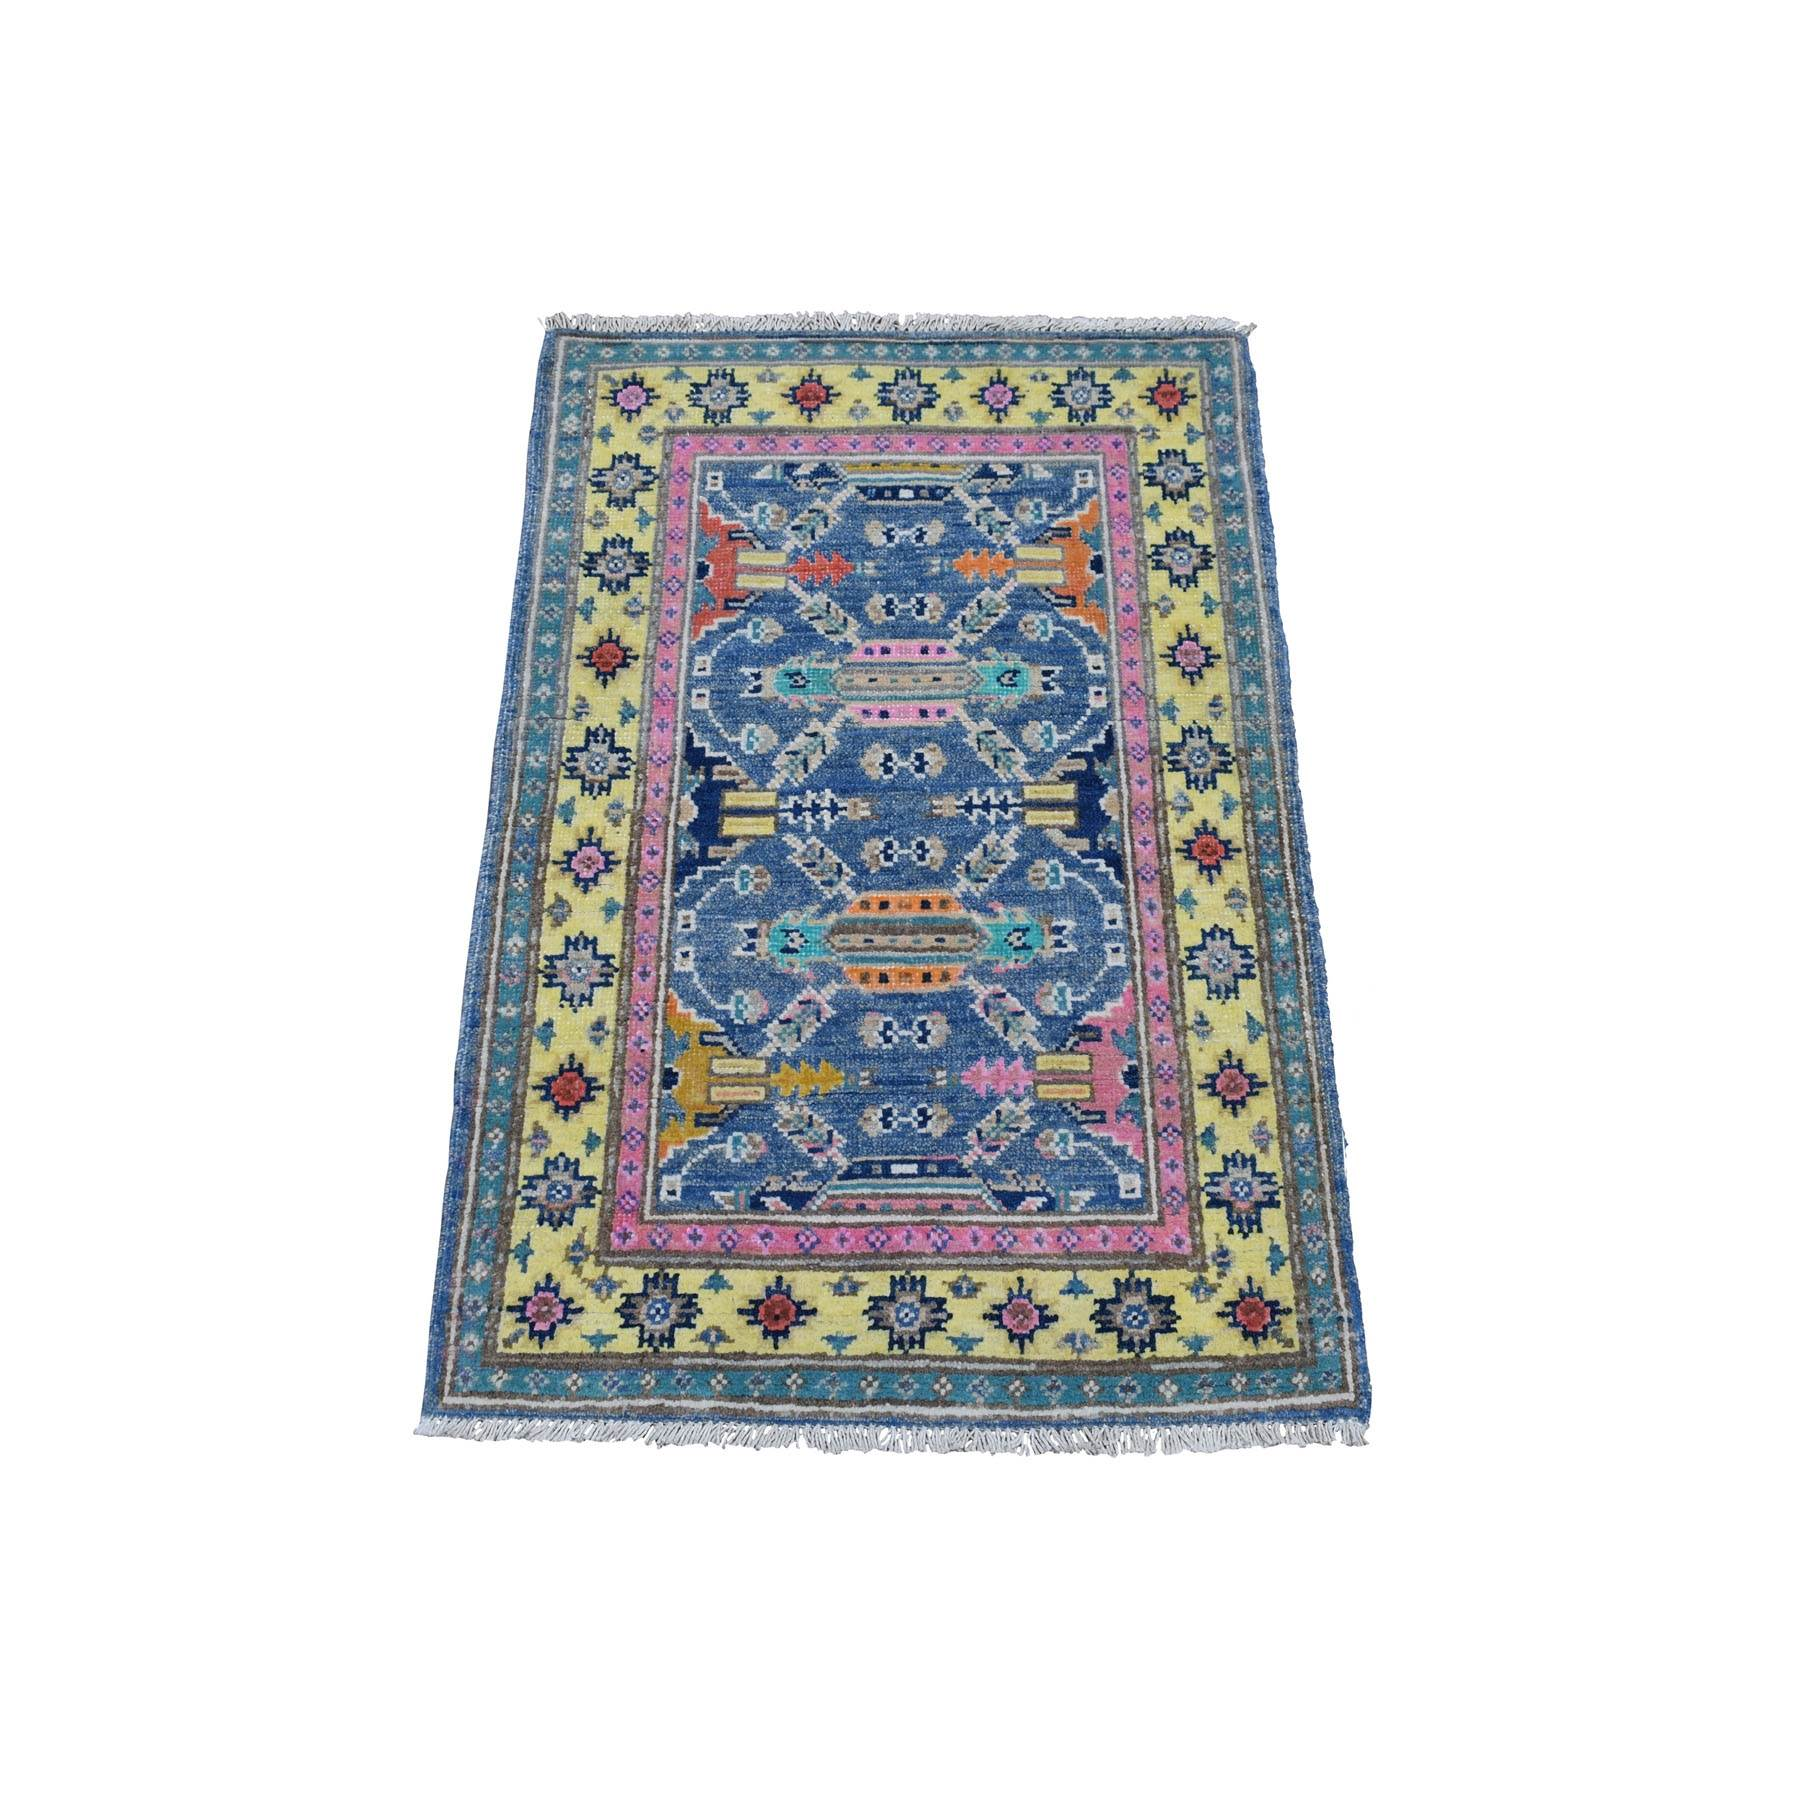 2'X3' Colorful Blue Fusion Kazak Pure Wool Geometric Design Hand Knotted Oriental Rug moaedb6c